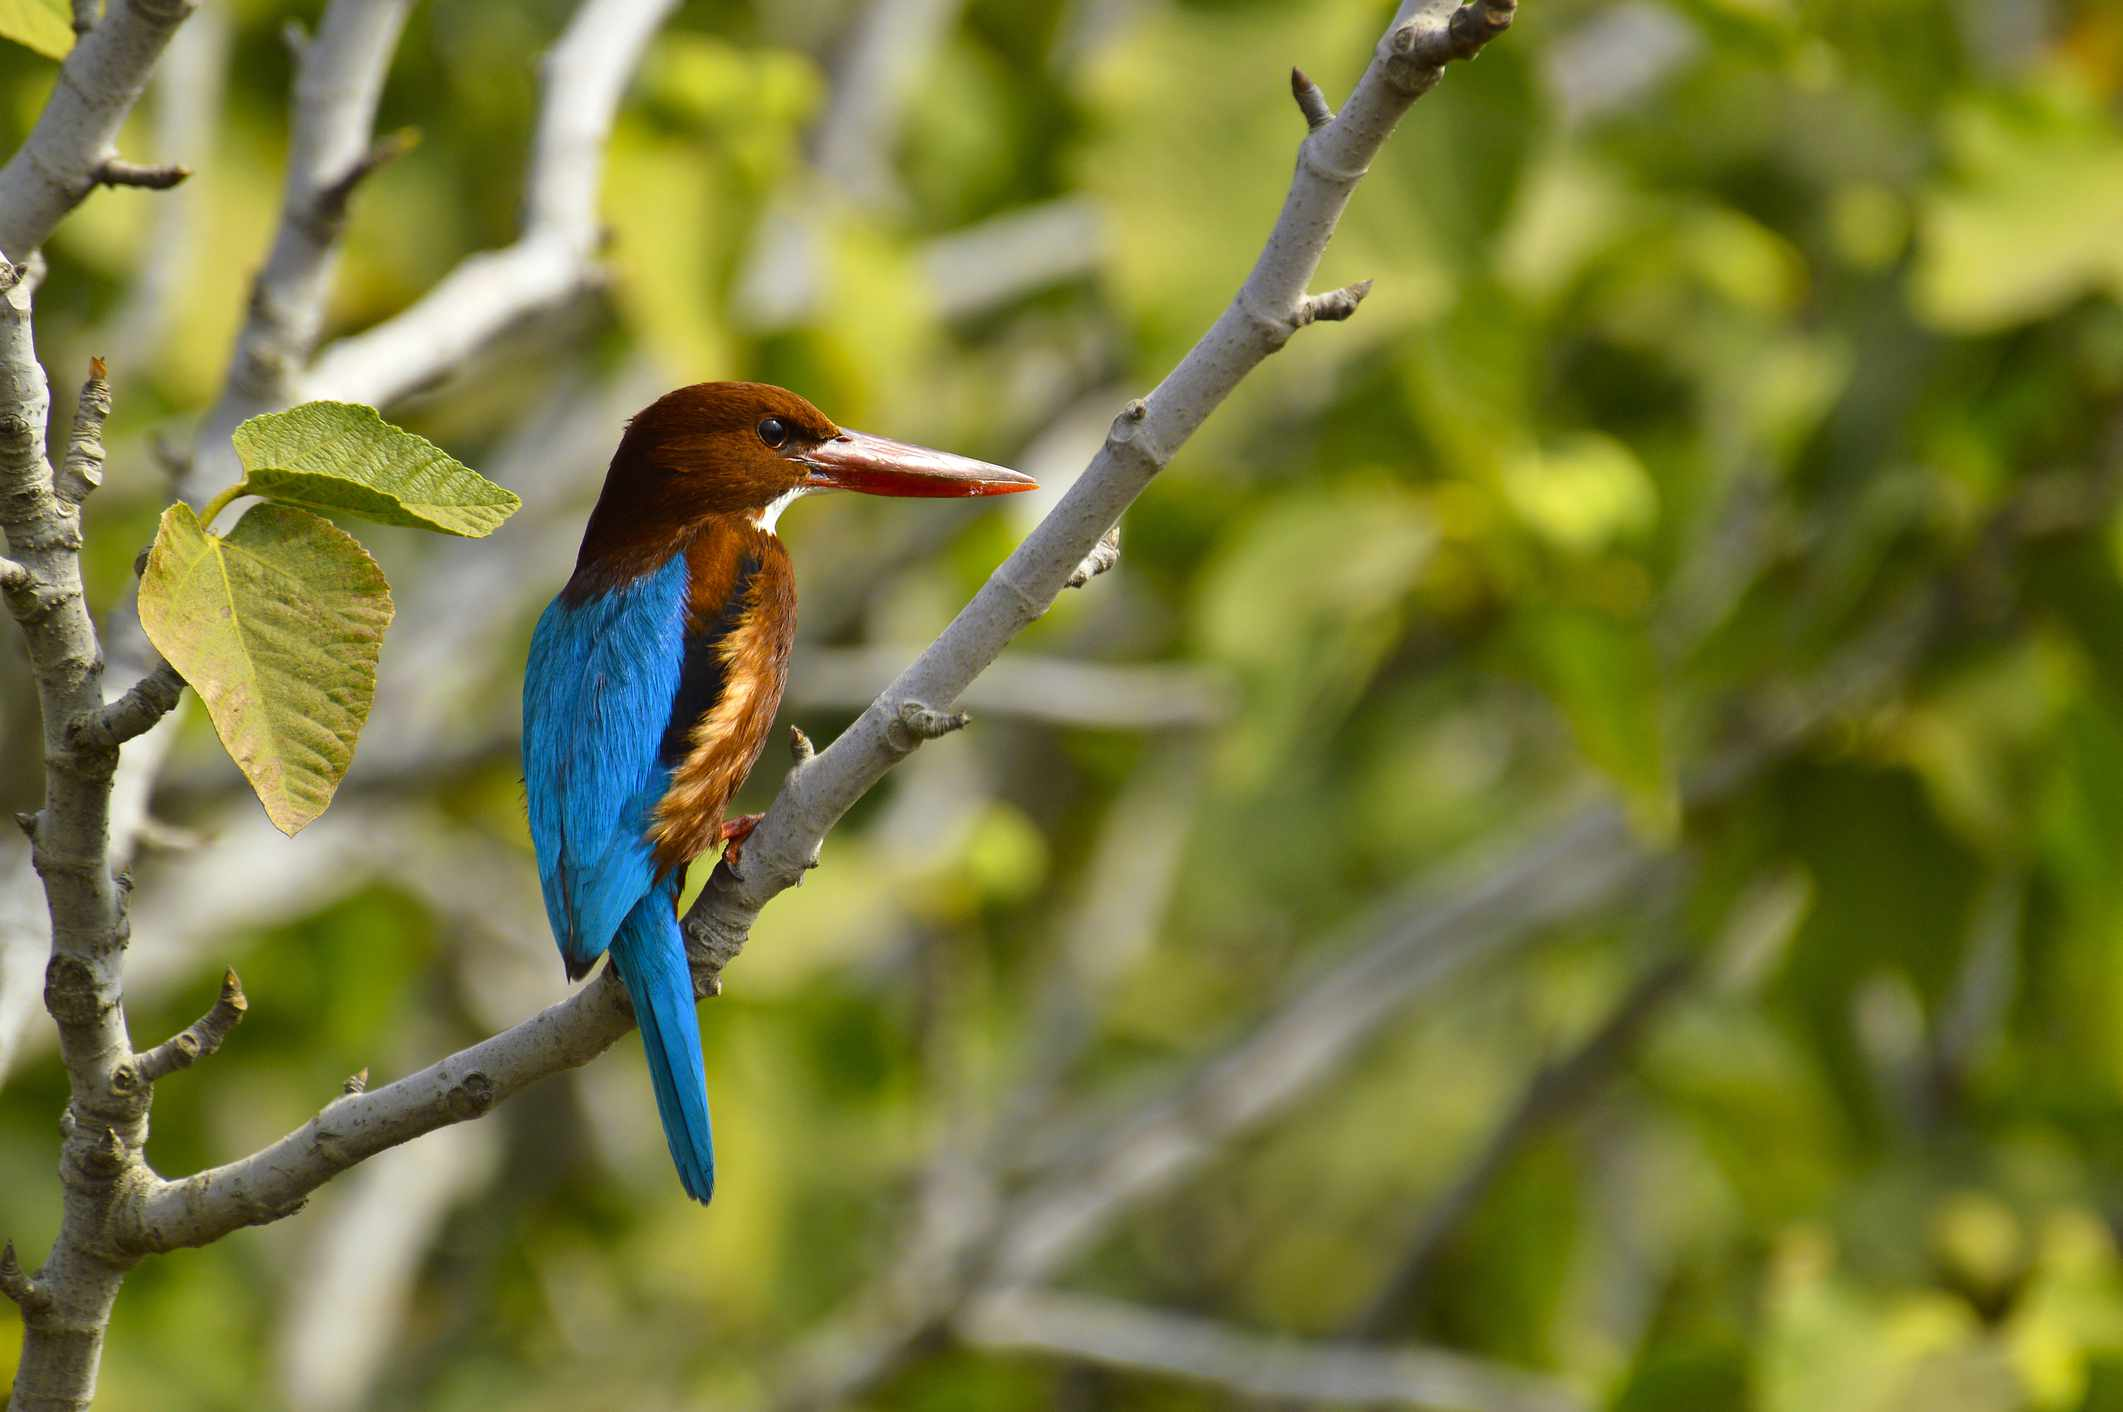 White-throated kingfisher, Halcyon smyrnensis or Smyrna kingfisher sitting on a branch, Pune